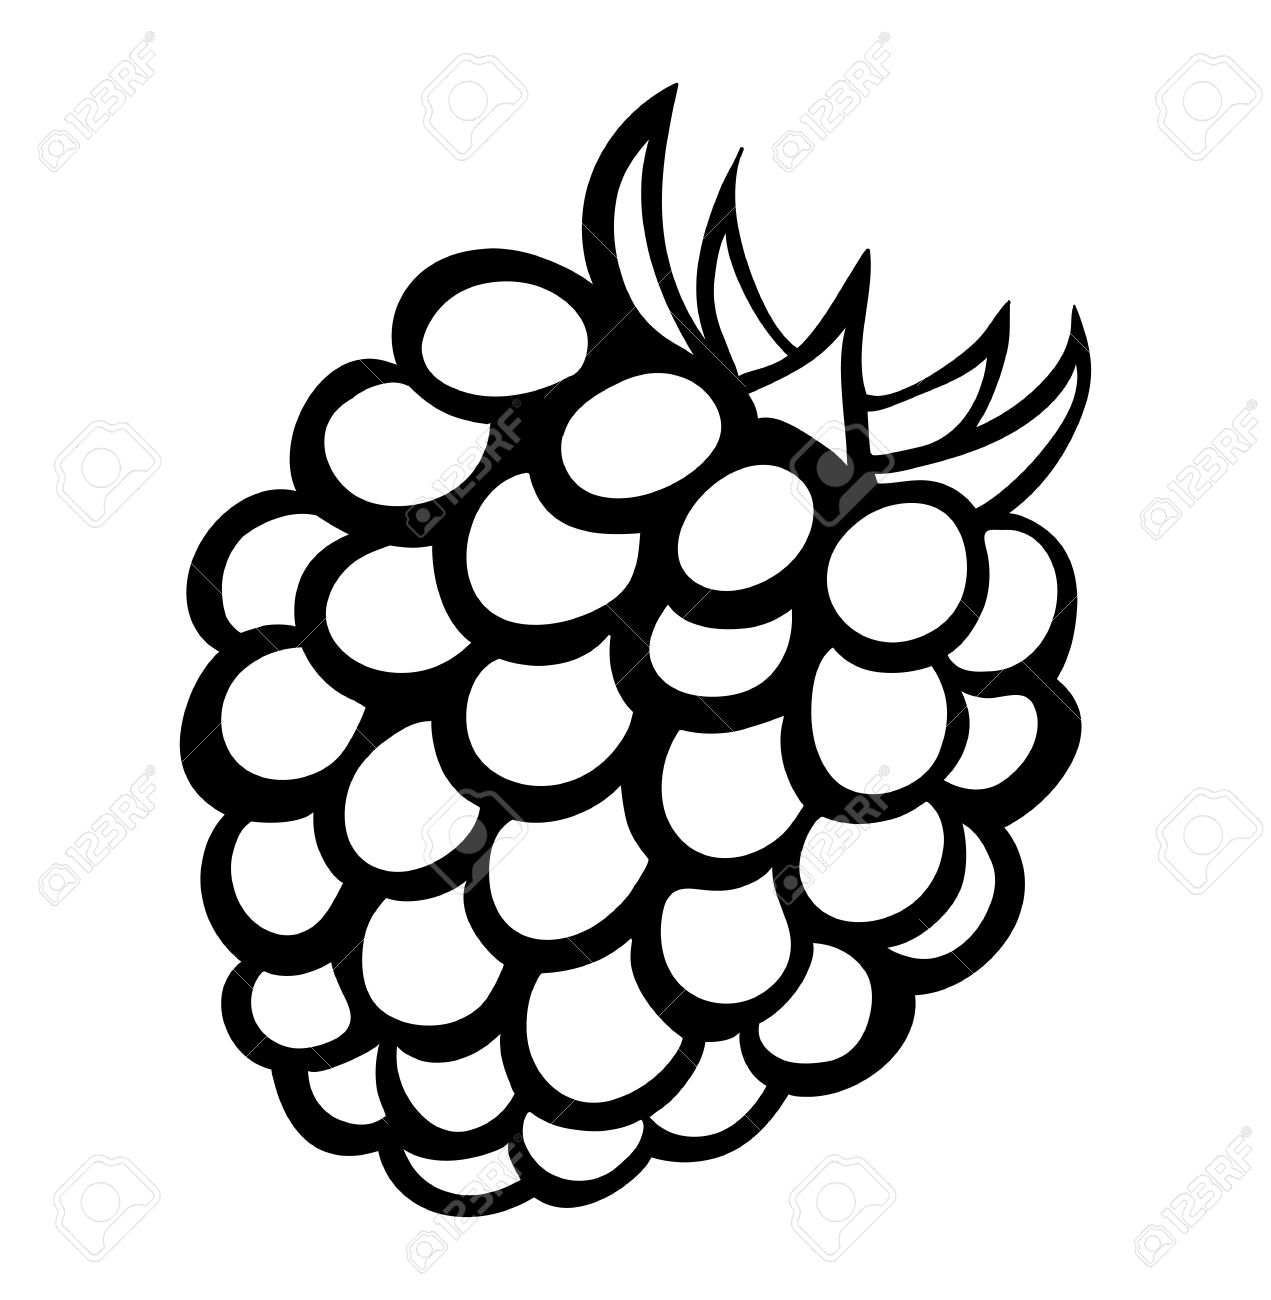 Raspberry clipart blackberry Blackberry white 6 Stock Blackberry